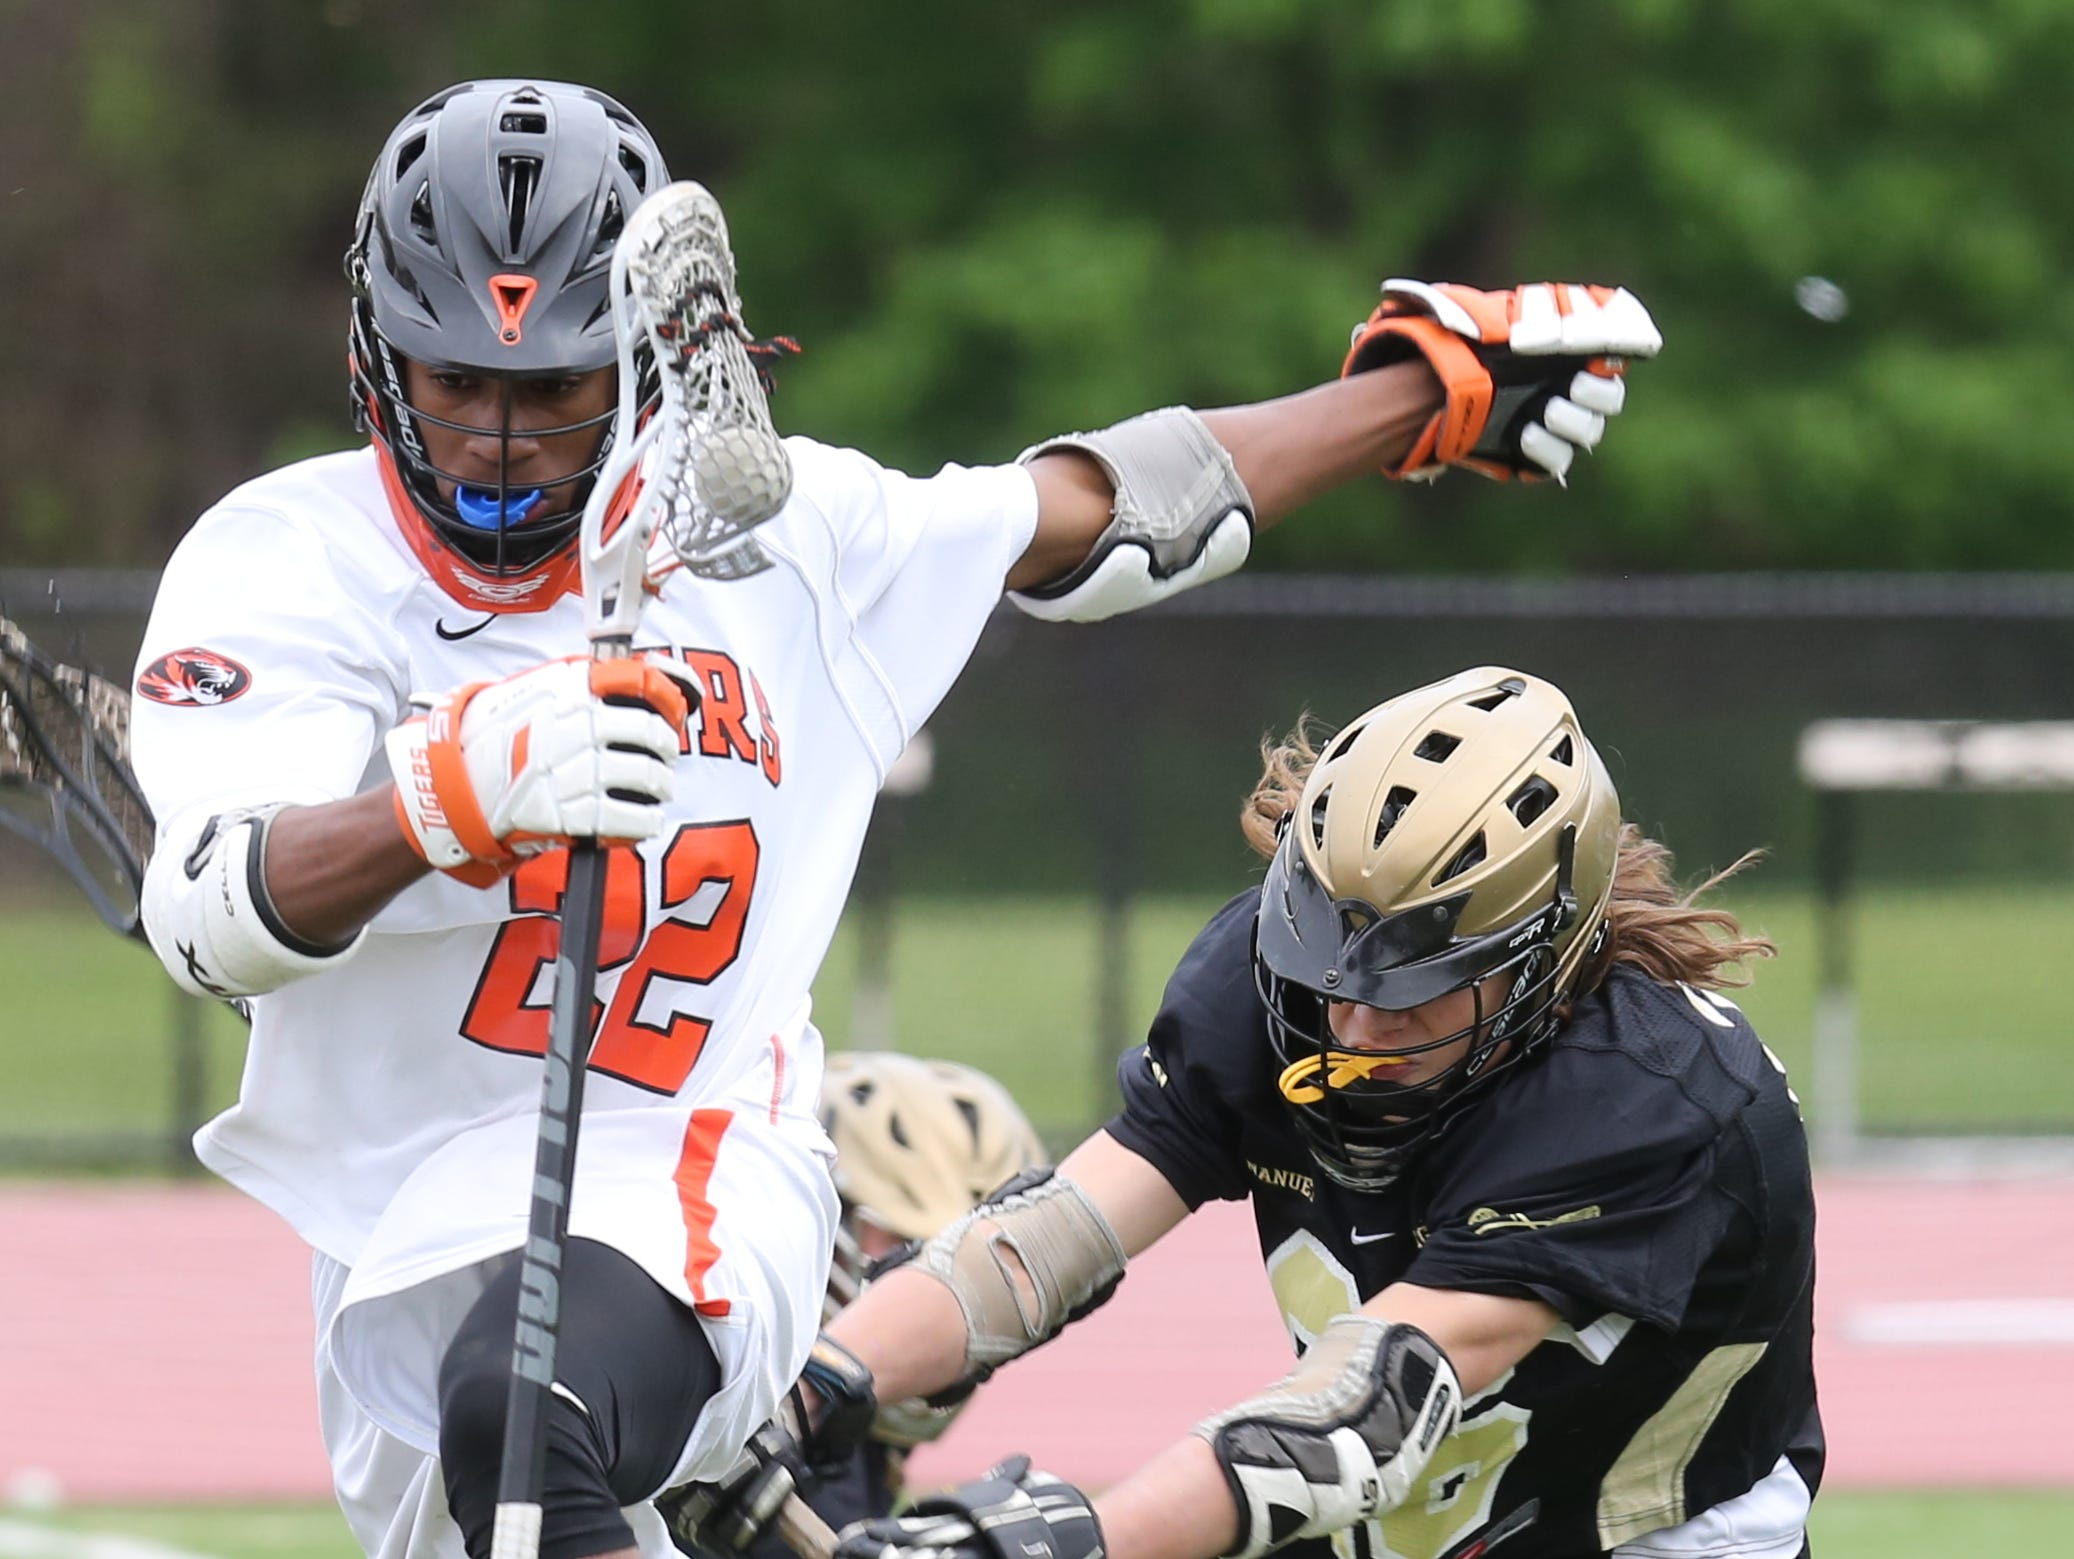 Nanuet's Randy Slavik (26) tries to steal the ball from Miles Tillman(22) of White Plains during boys lacrosse game at White Plains High School May 10, 2016. White Plains defeats Nanuet 14-4.